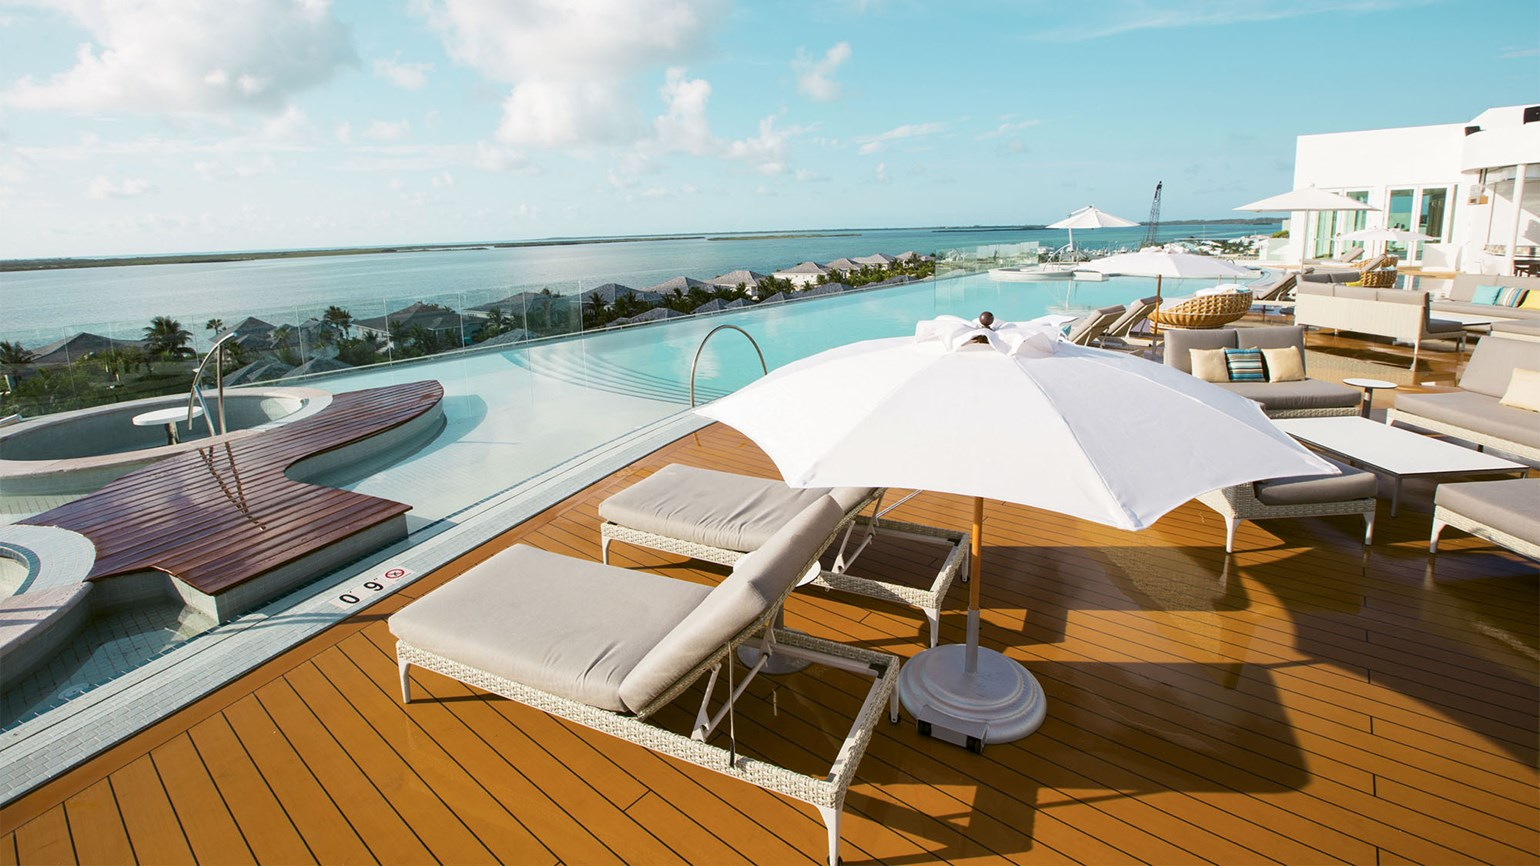 Island exploration with Resorts World Bimini